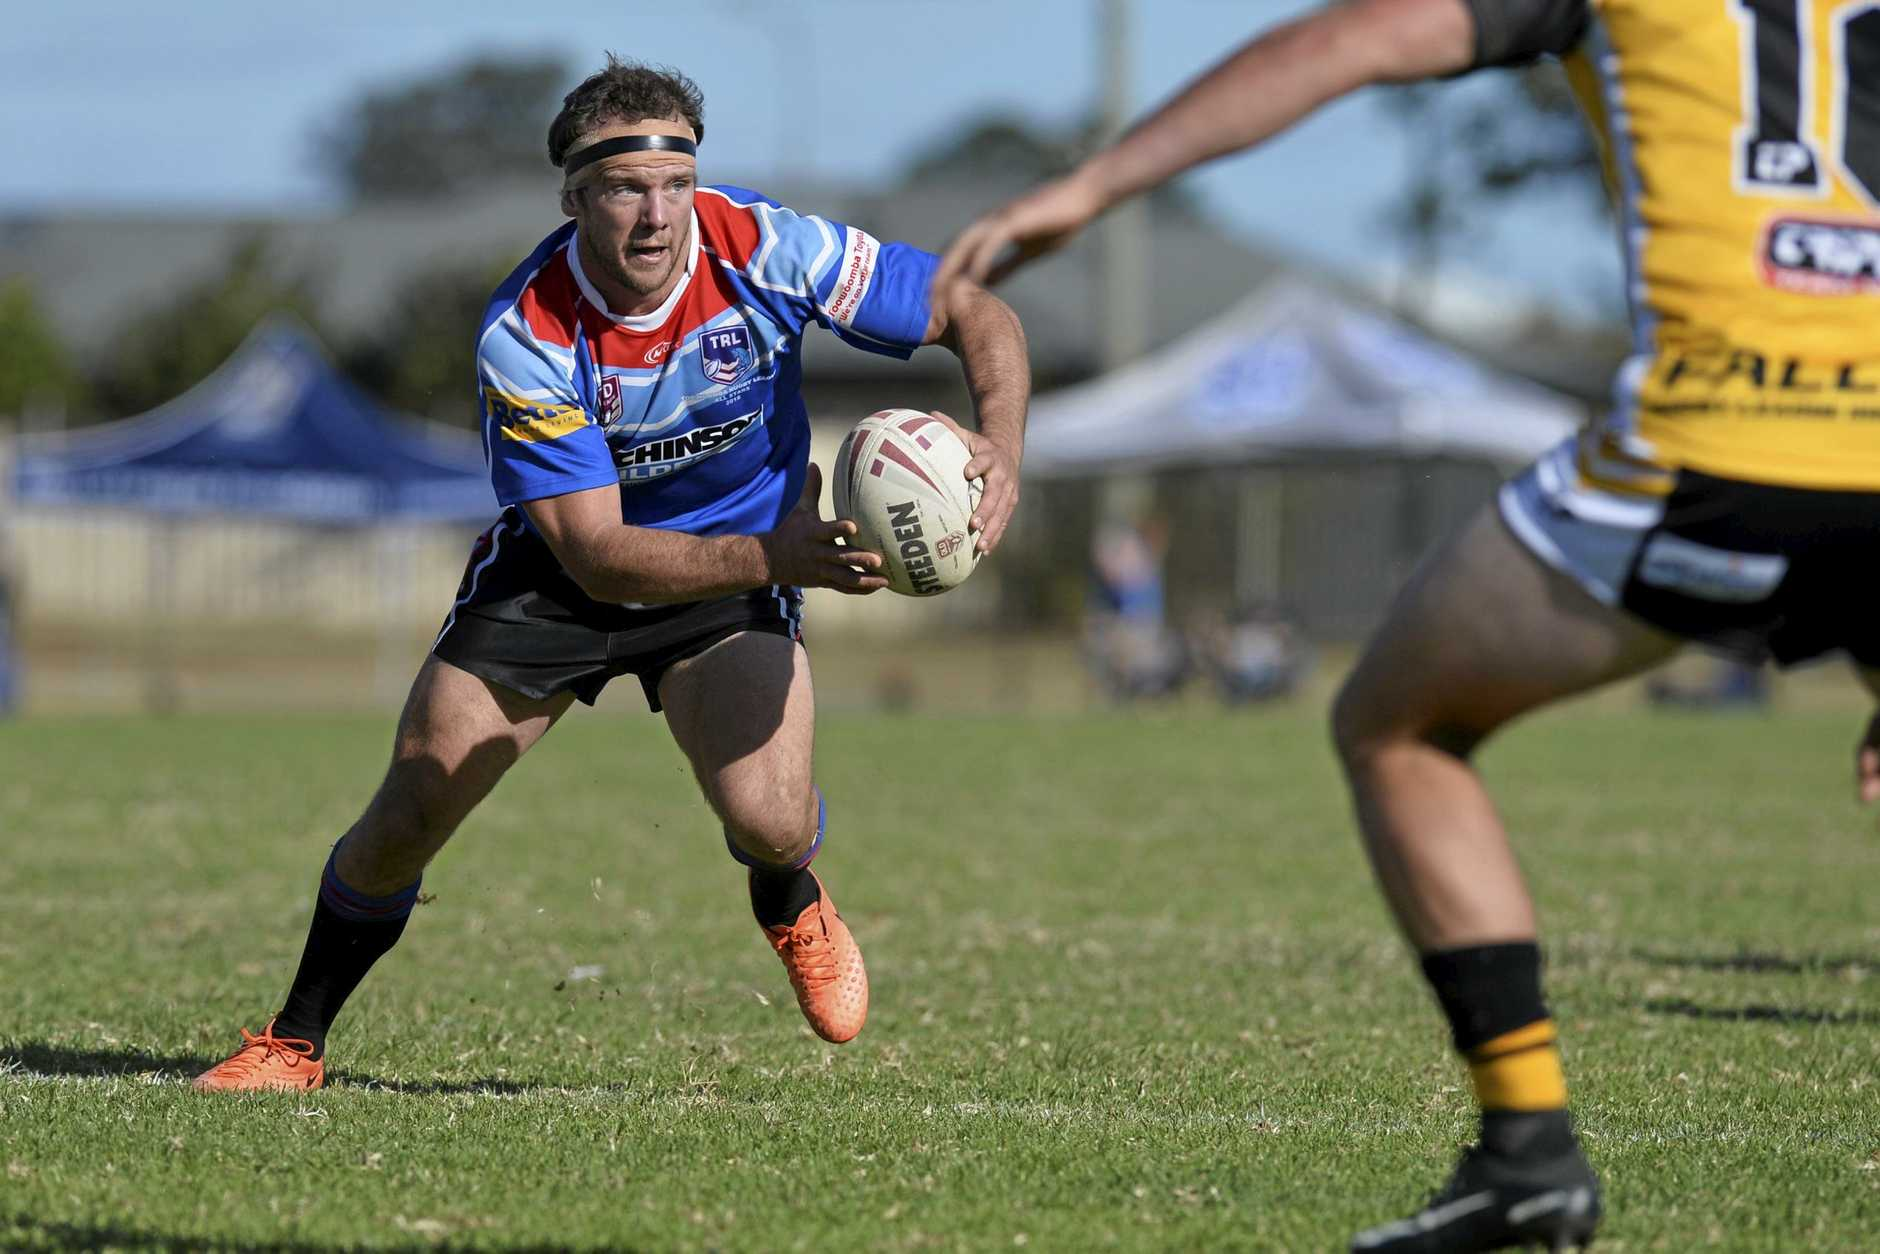 HOOKER: Ben Sullivan in possession for Toowoomba Clydesdales against Sunshine Coast Falcons last year. He is again in the Clydesdales for Saturday's Broncos curtain-raisers in Warwick.